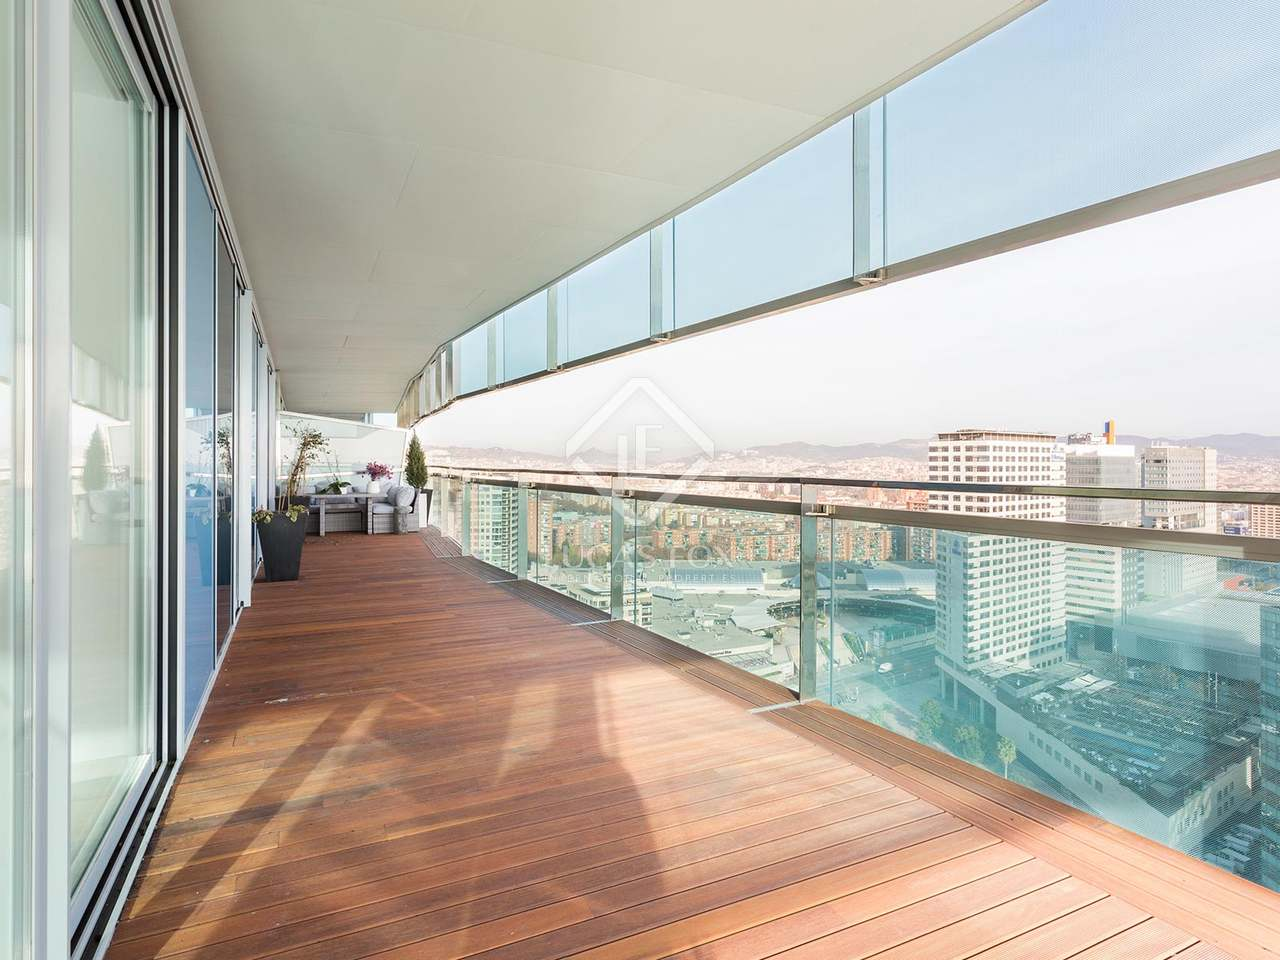 Appartement de 120m a vendre diagonal mar avec 63m for Appartement piscine barcelone